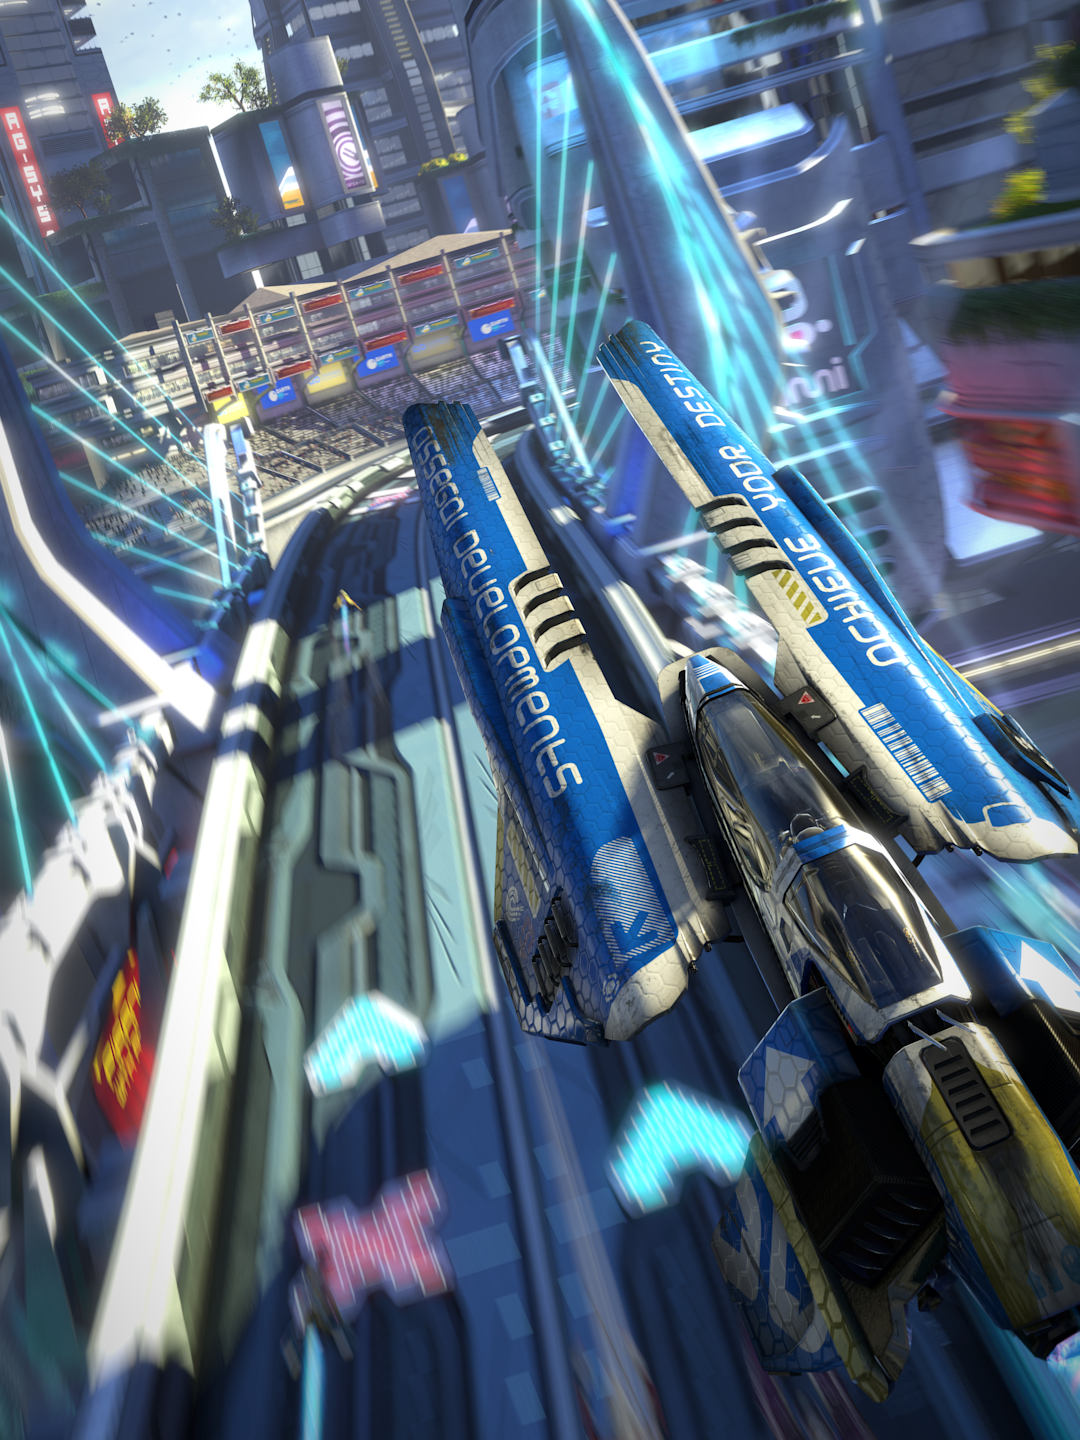 Evolution Hd Wallpaper Wipeout Omega Collection Gets Stunning Images Via Dead